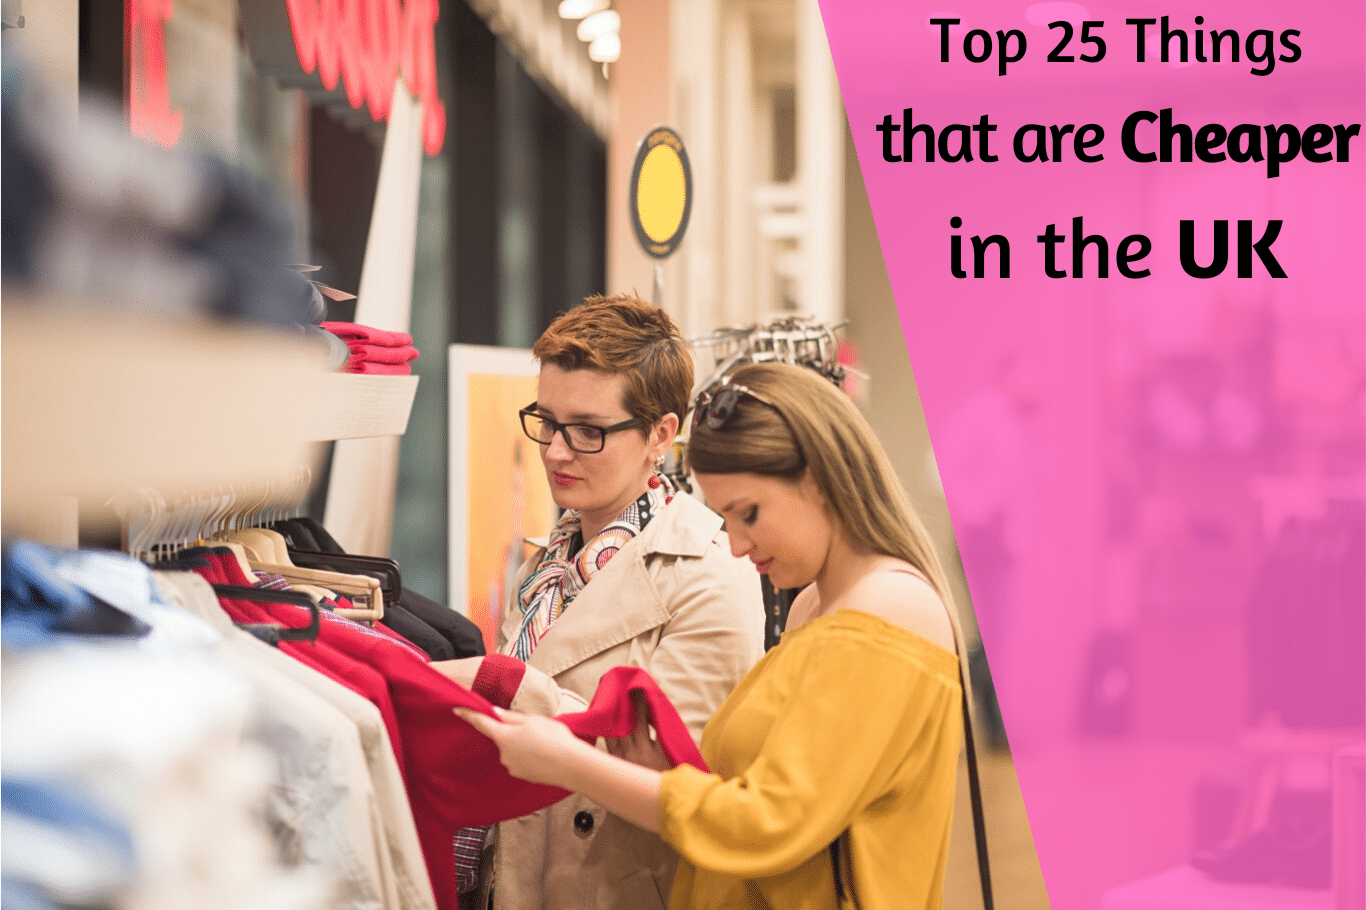 Top 25 Things that are Cheaper in the UK